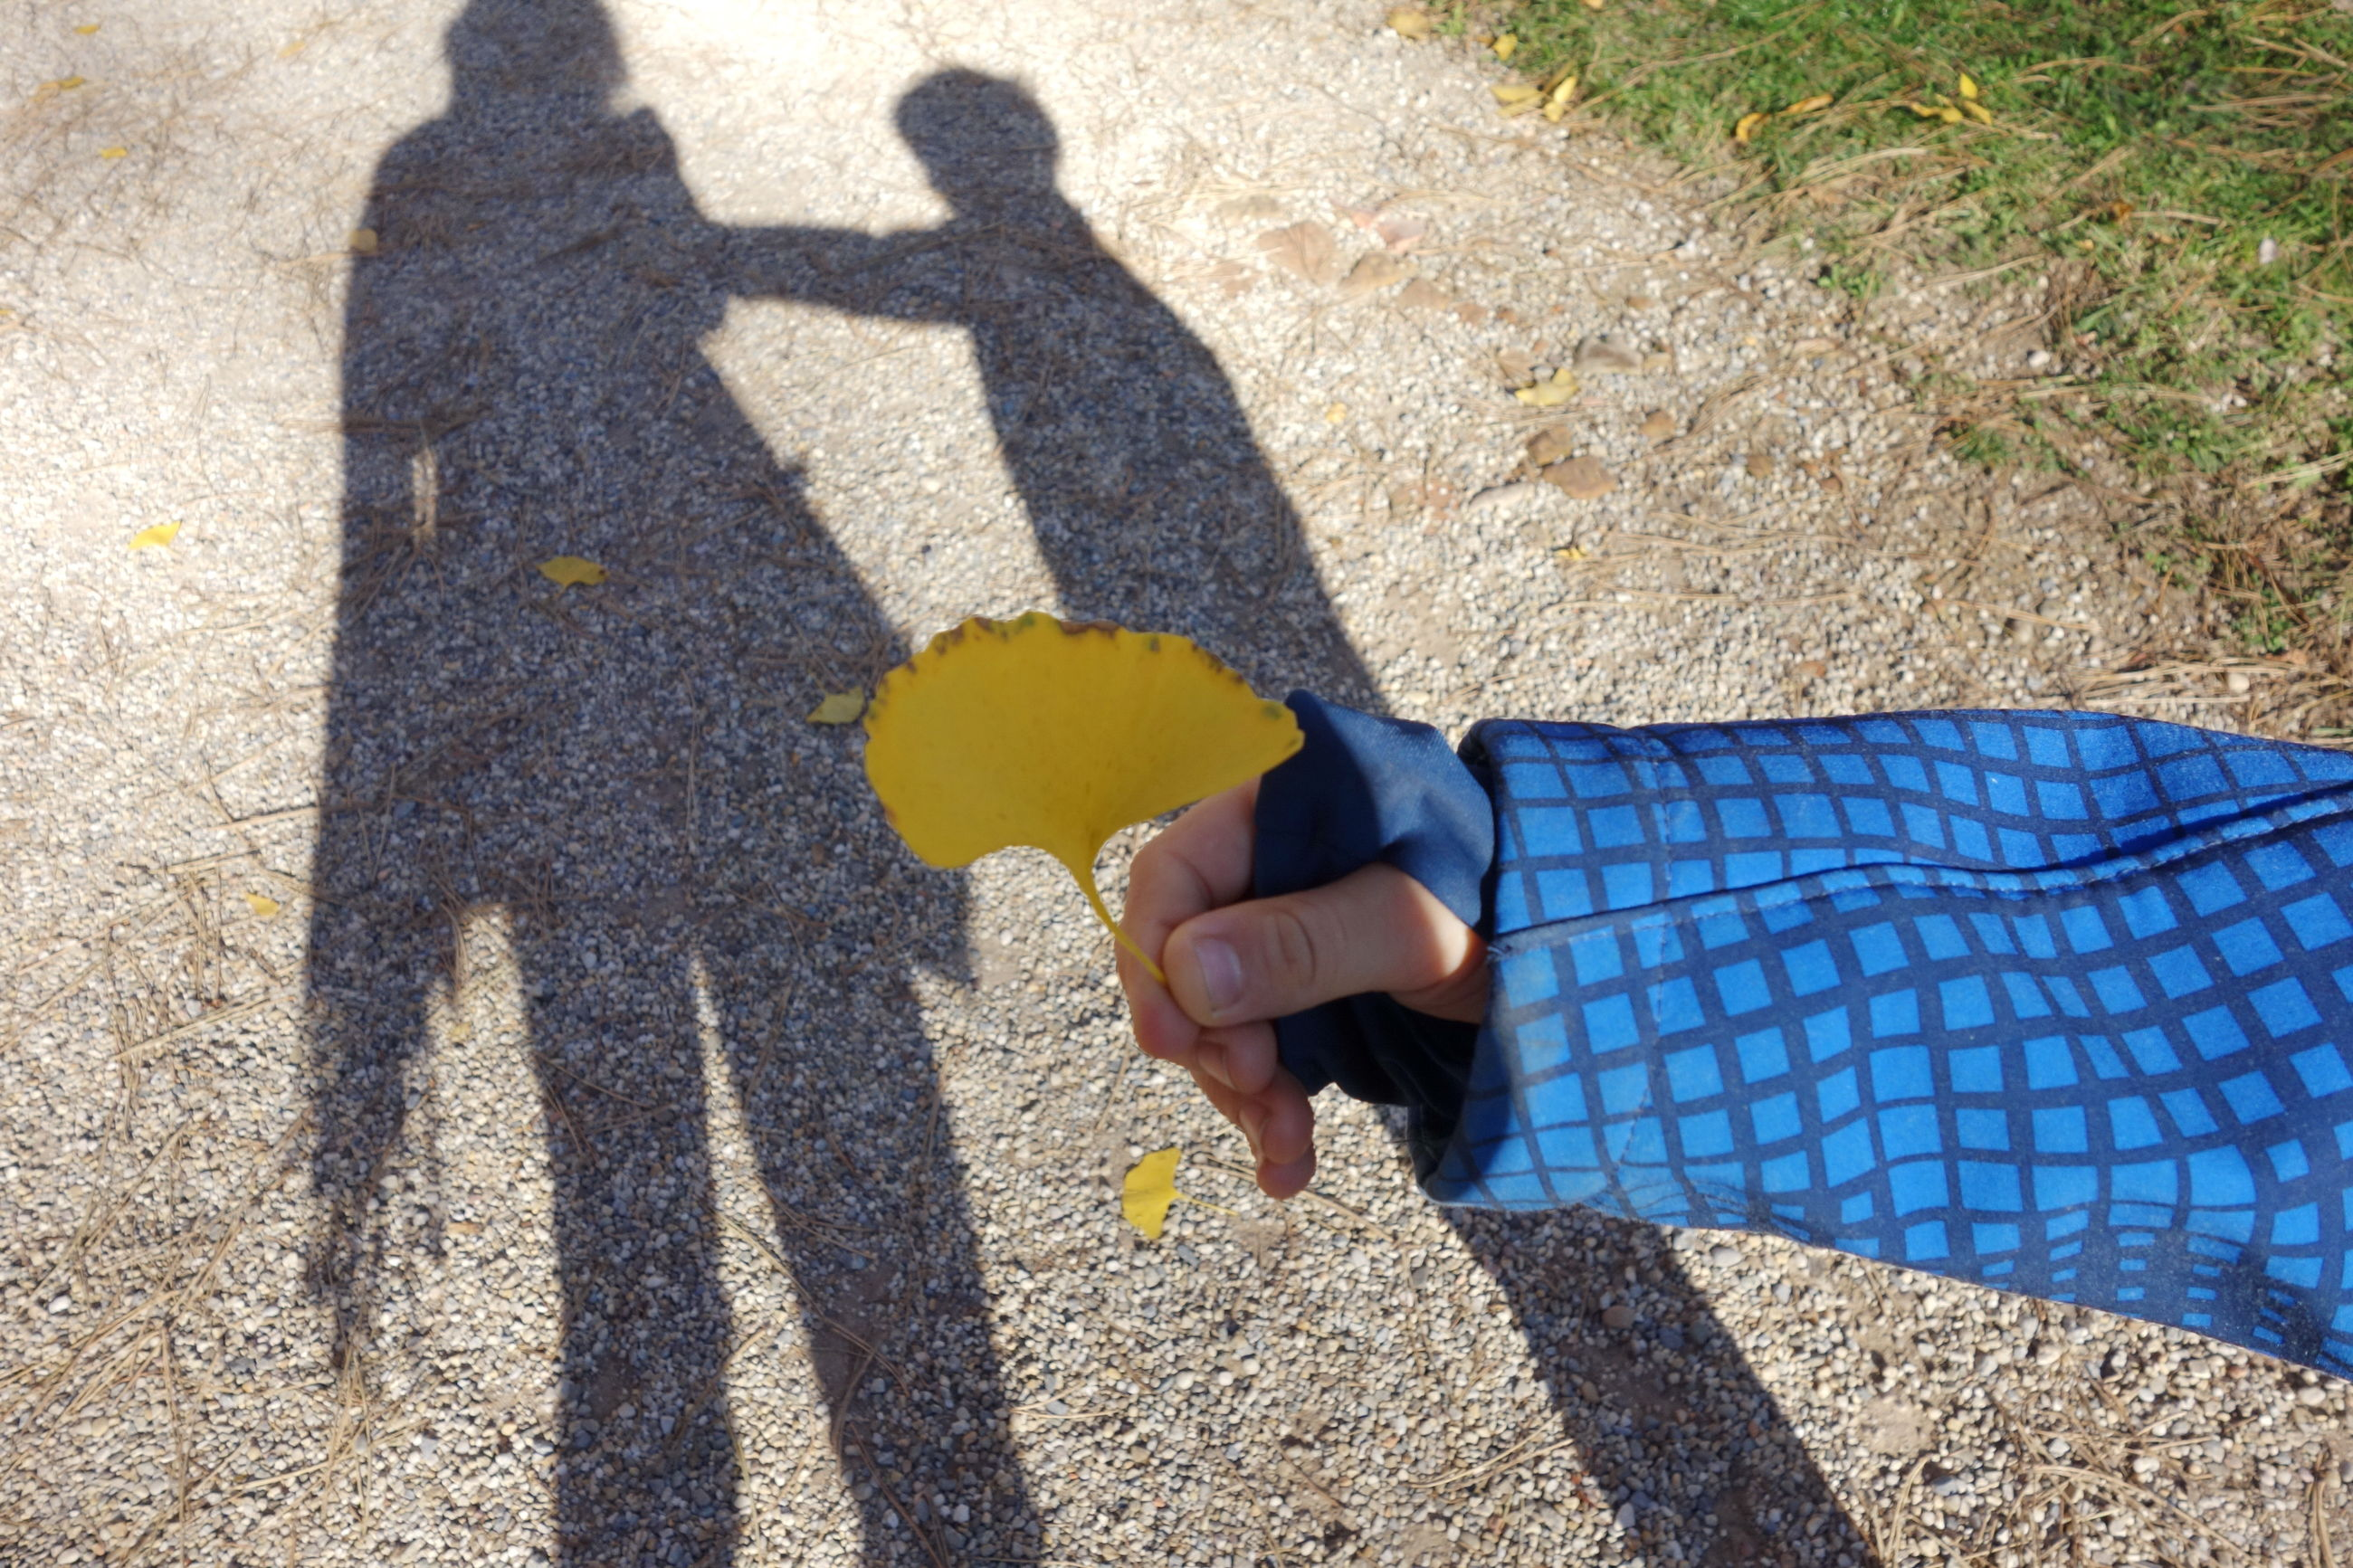 shadow, sunlight, standing, road, street, high angle view, person, holding, yellow, day, focus on shadow, outdoors, gesturing, footpath, toddler